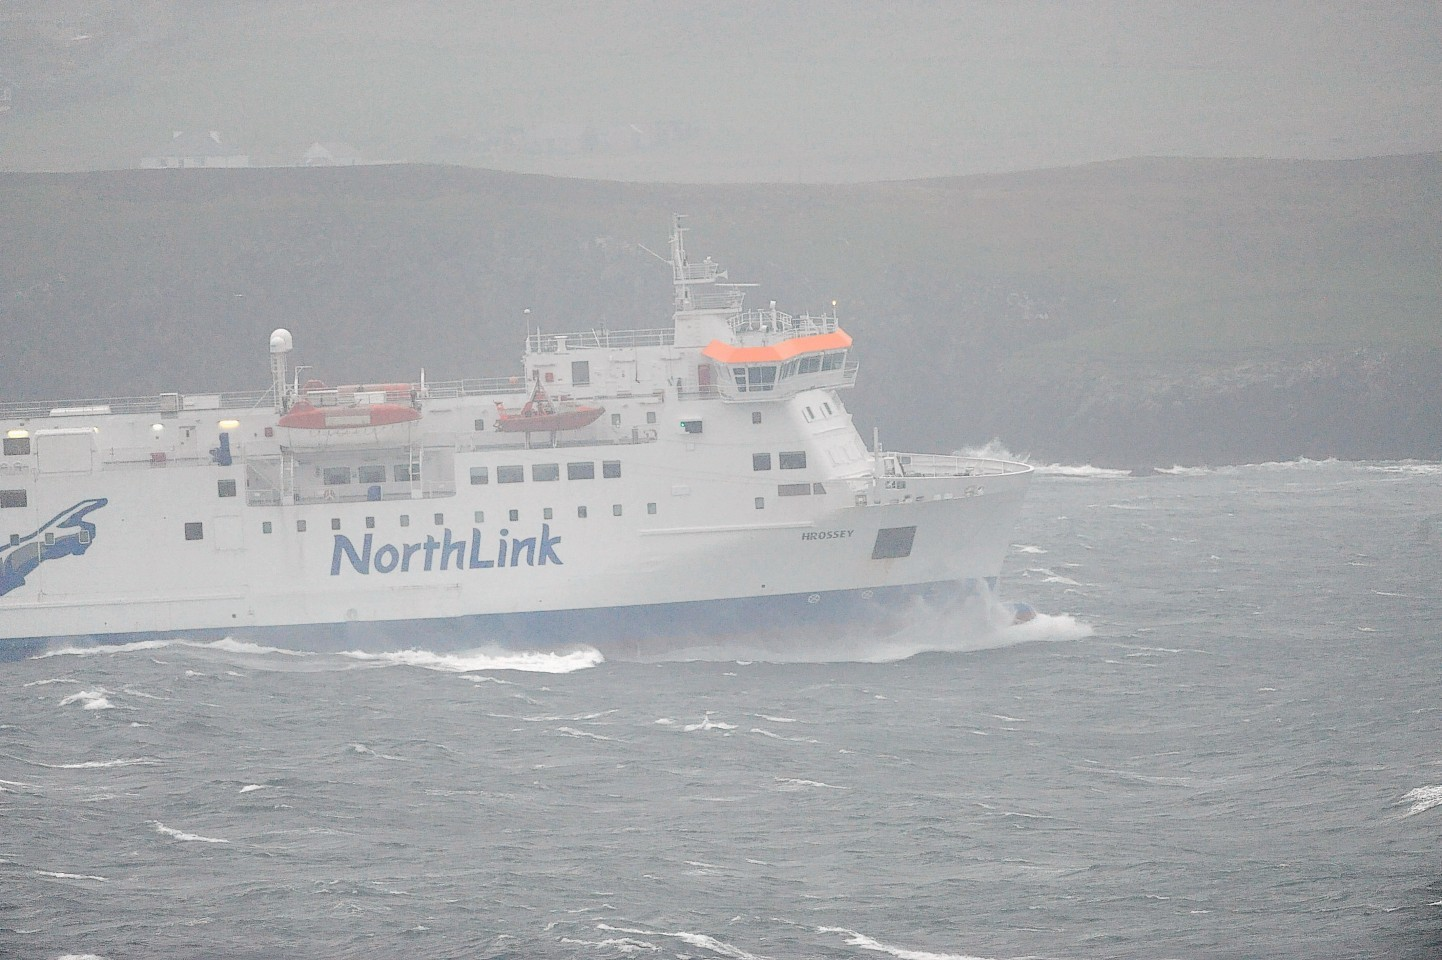 Northlink Ferries were cancelled as a result of high winds